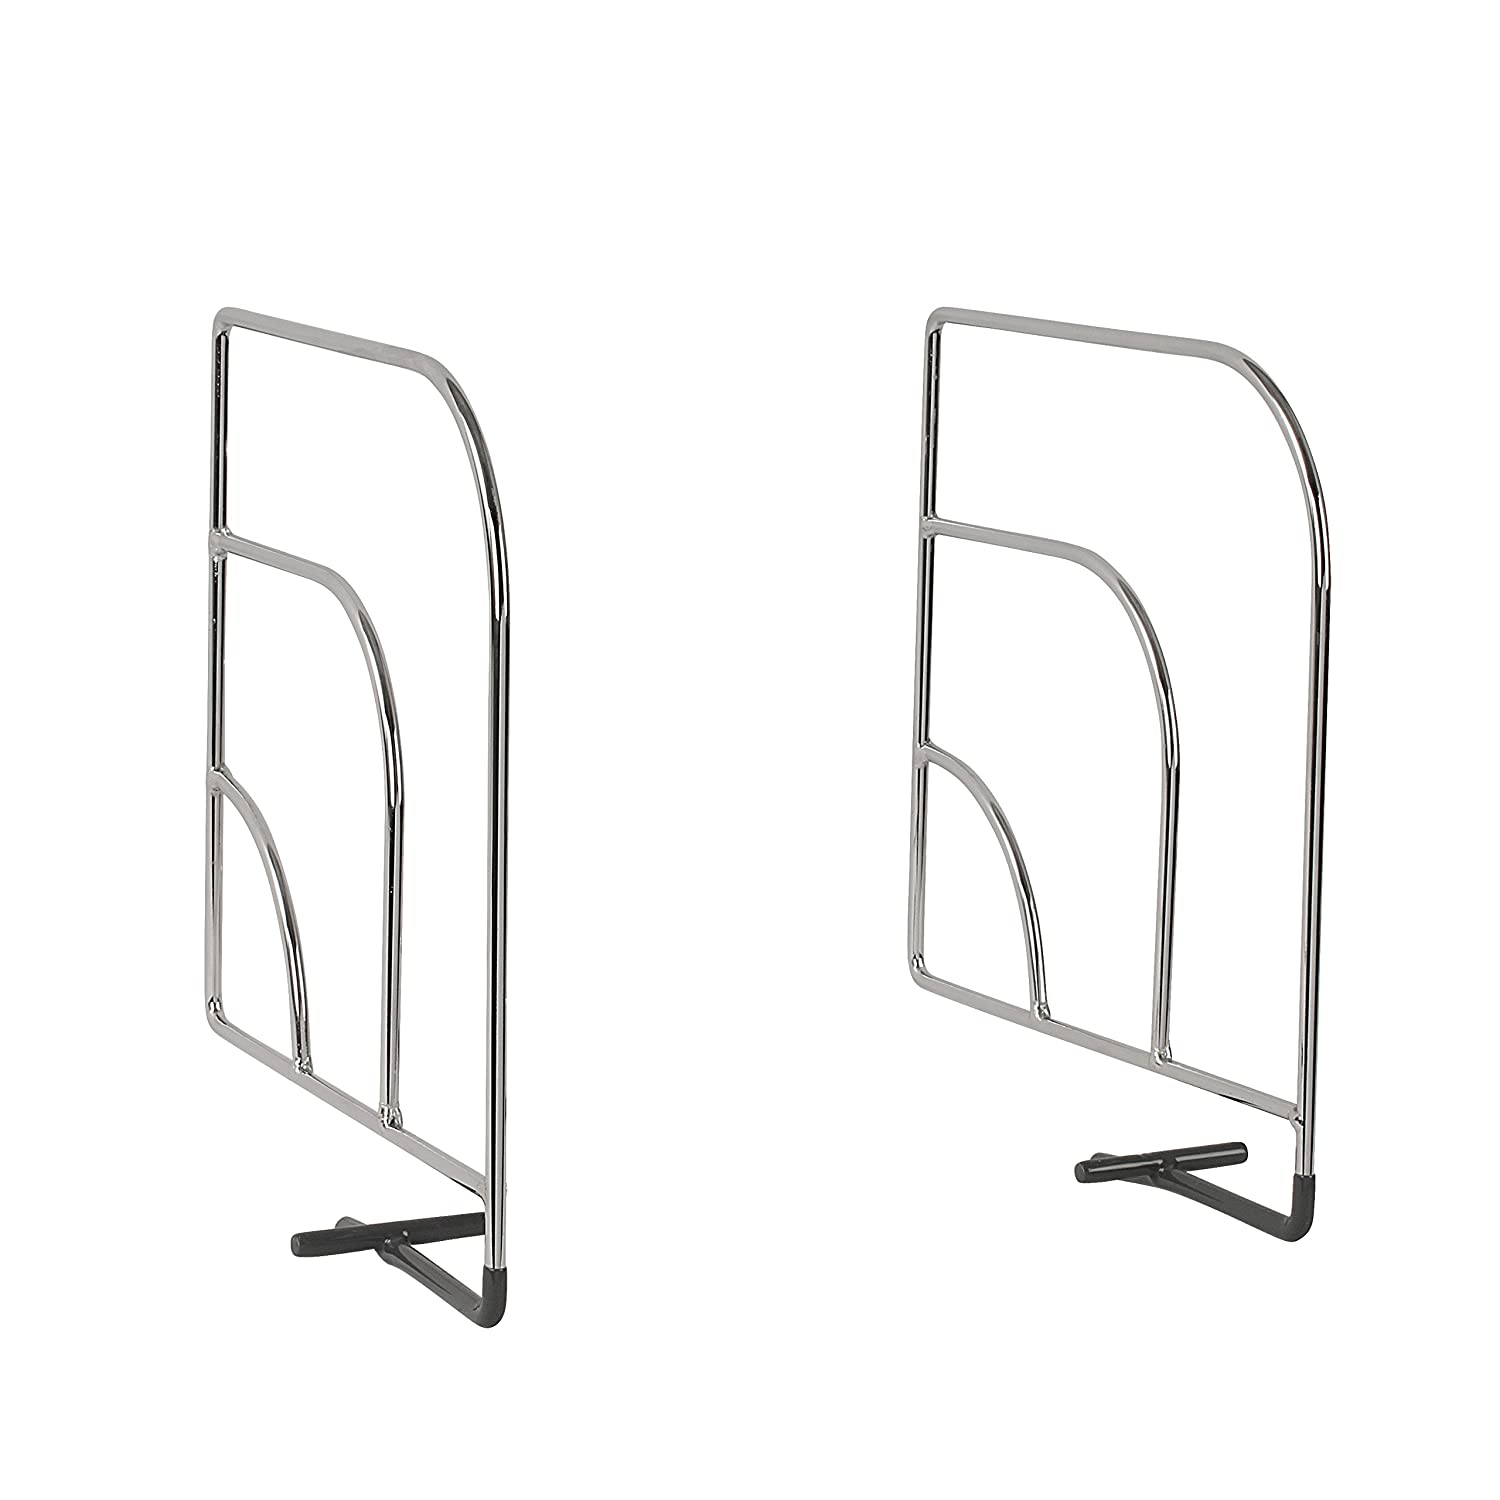 Spectrum Diversified Over The Shelf Divider, Small, 1-Pair, Chrome Inc 77070